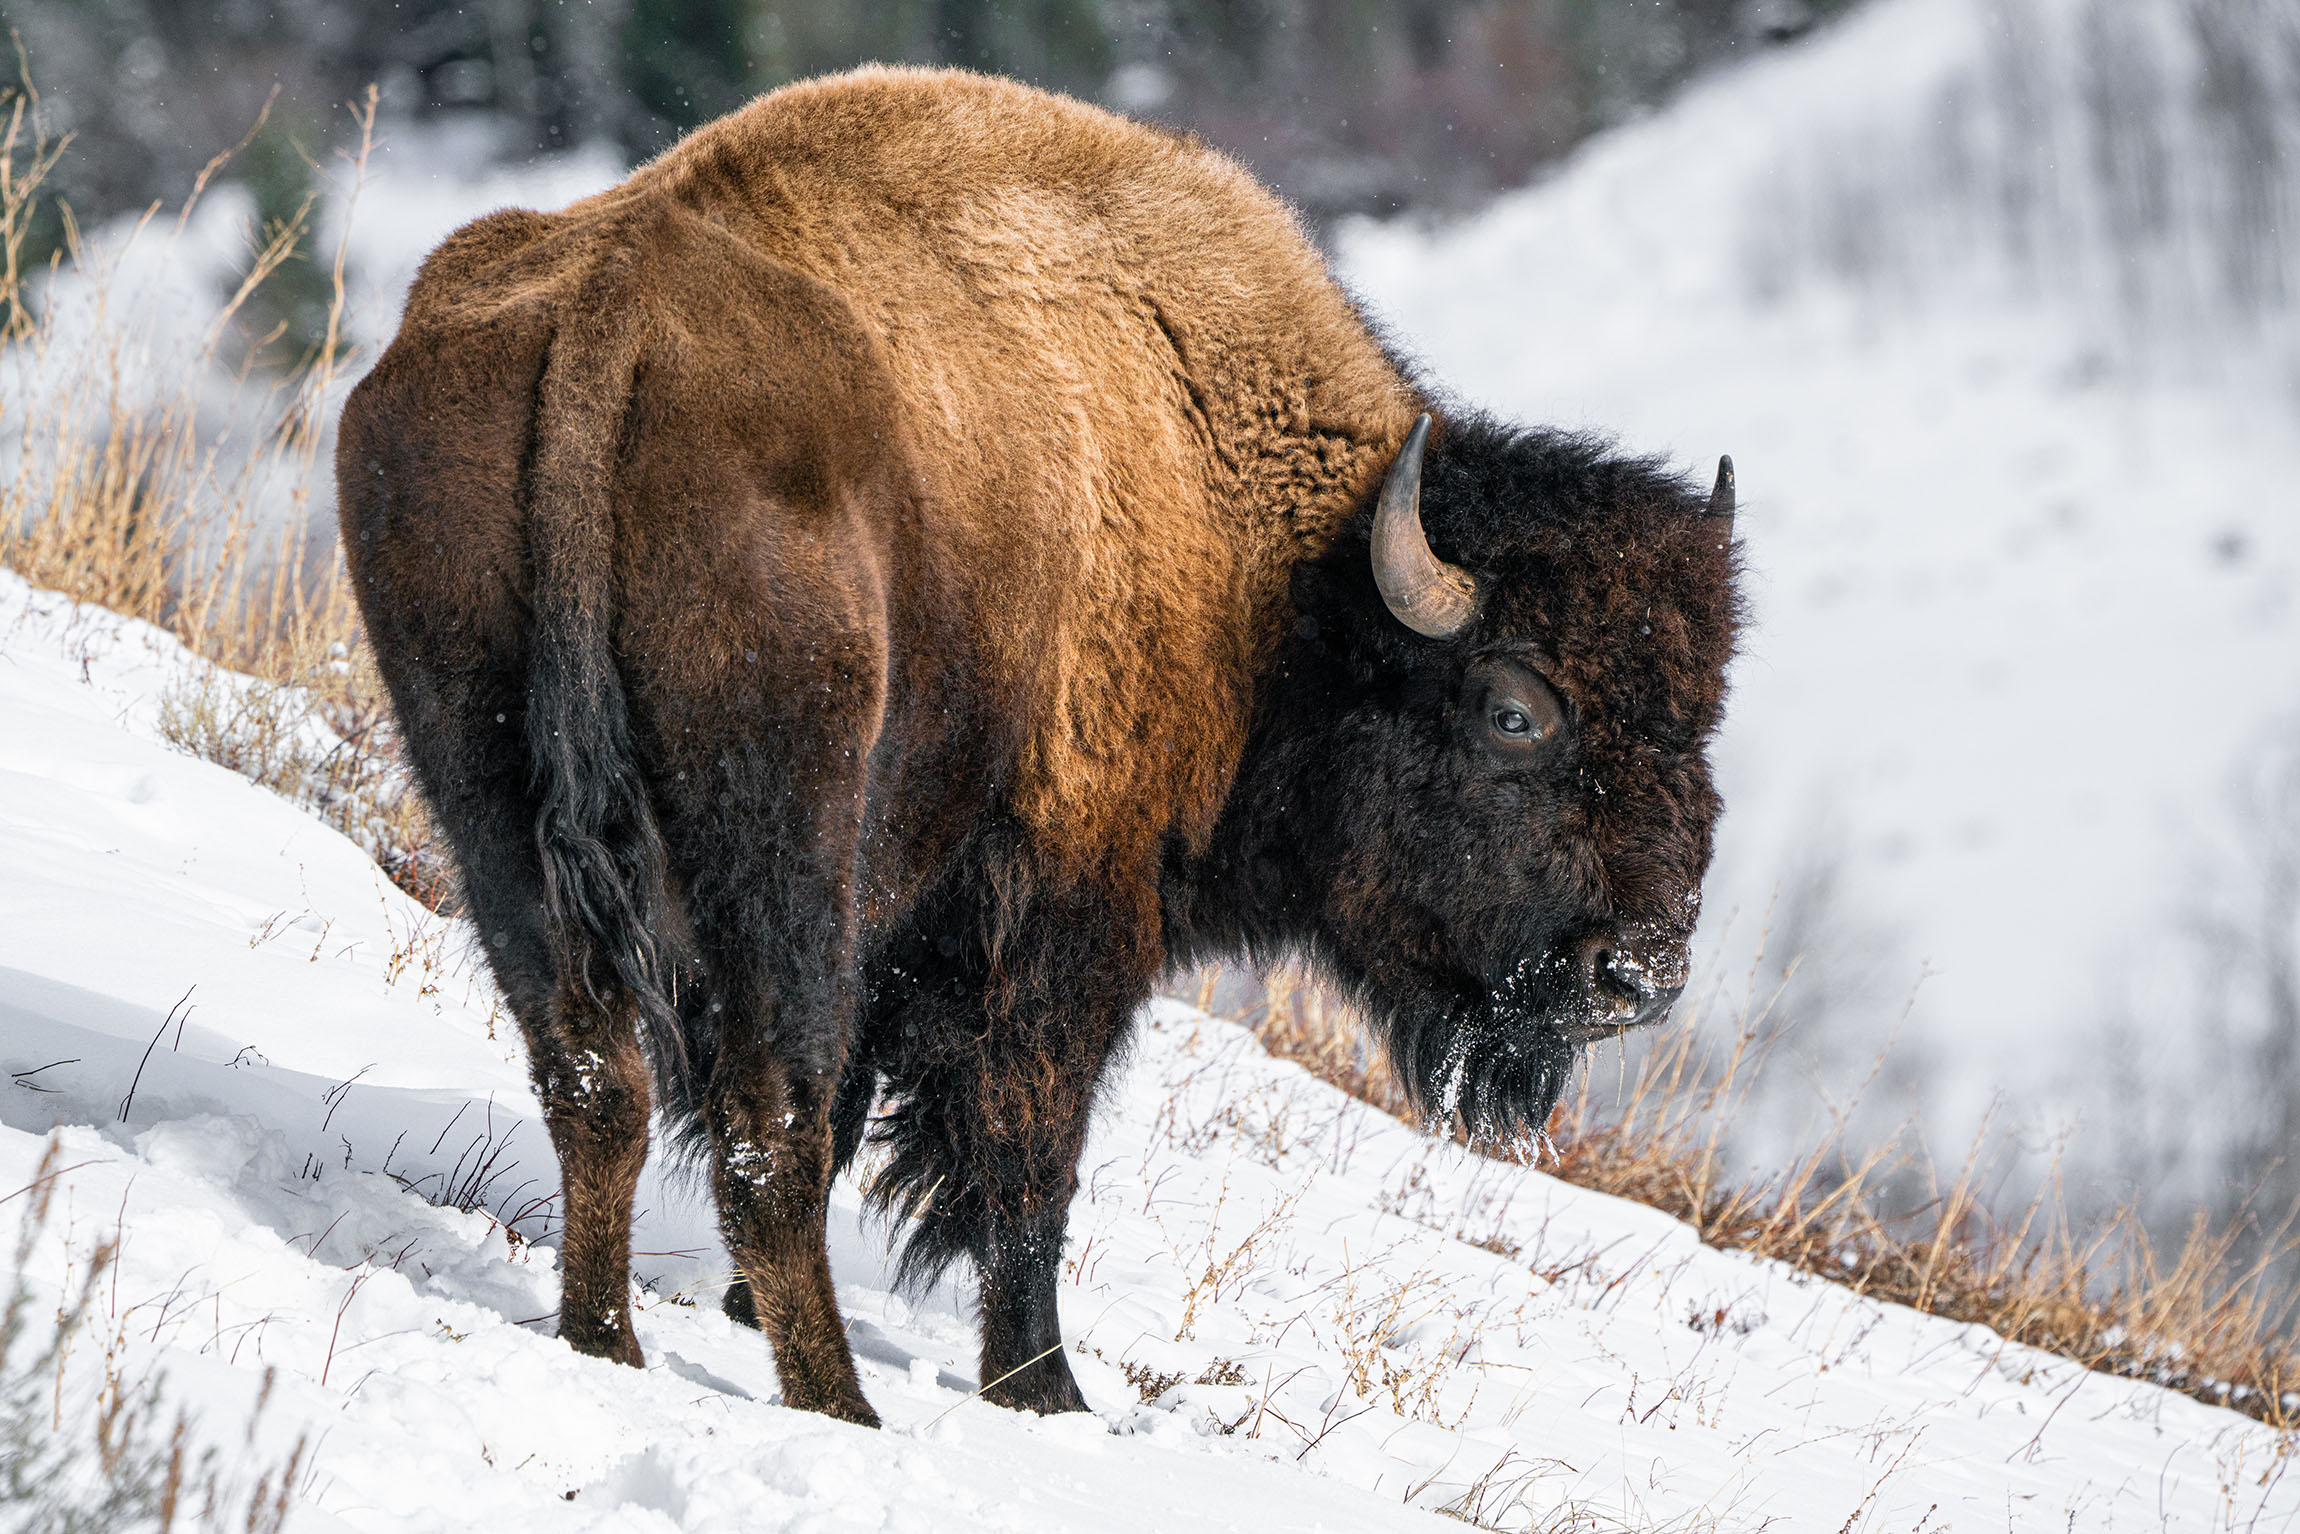 #bison, #buffalo, #wildlife, #wildlifephotography, #nationalpark, #grandtetonnationalpark, #gtnp, #sony, #safedistance #nps, #wildthingsofwyoming